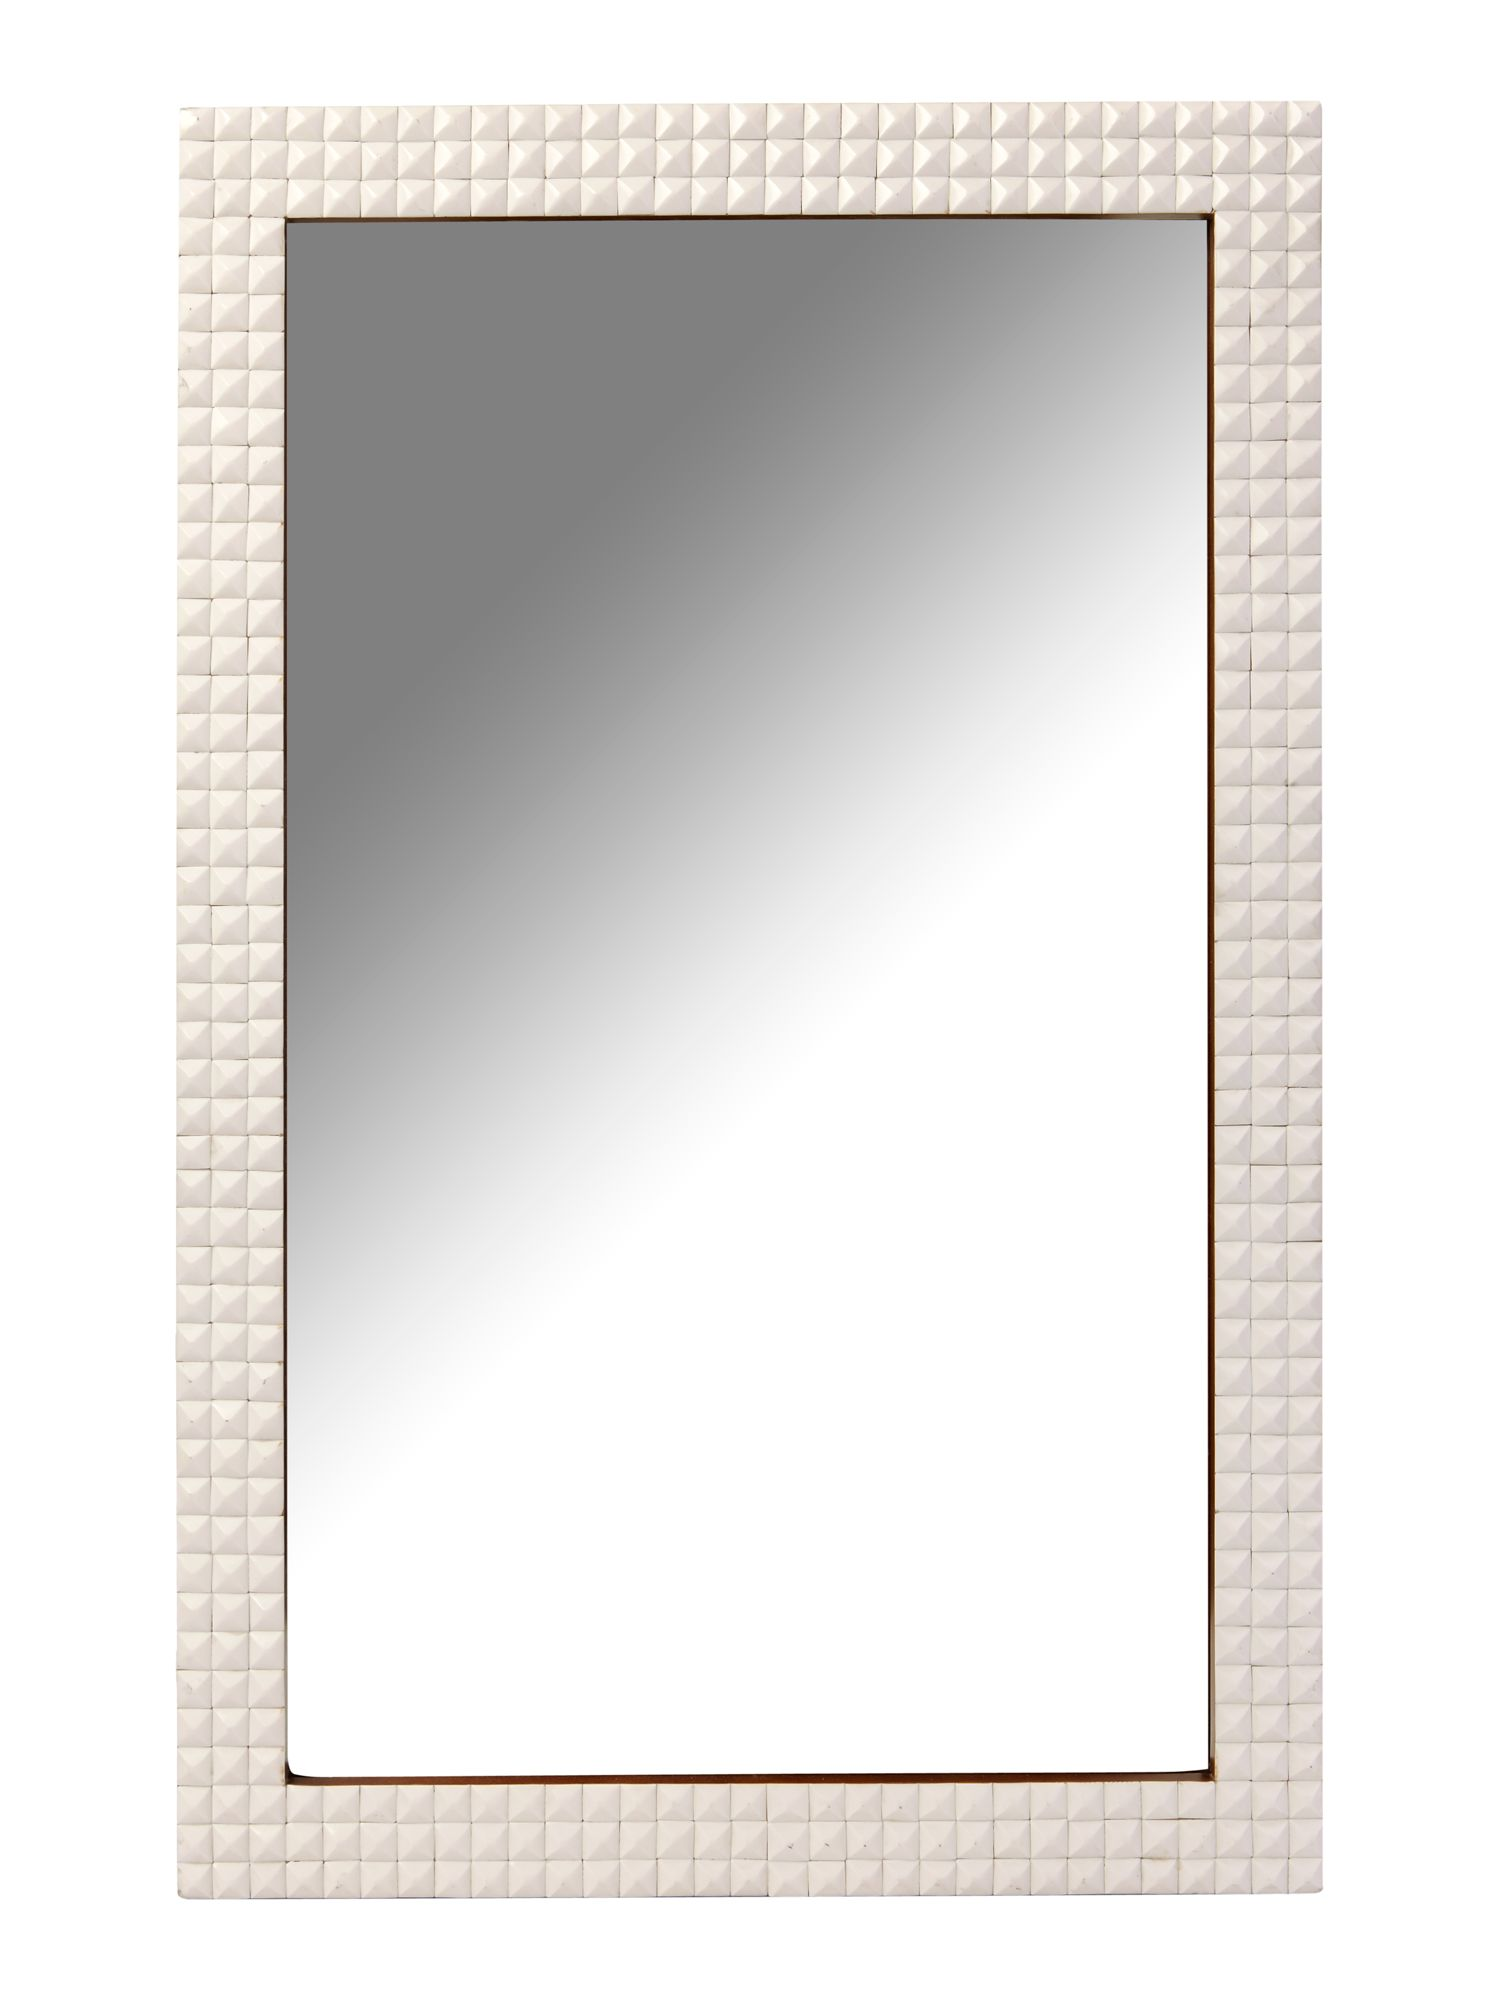 Diamond textured mirror 60 x 90cm